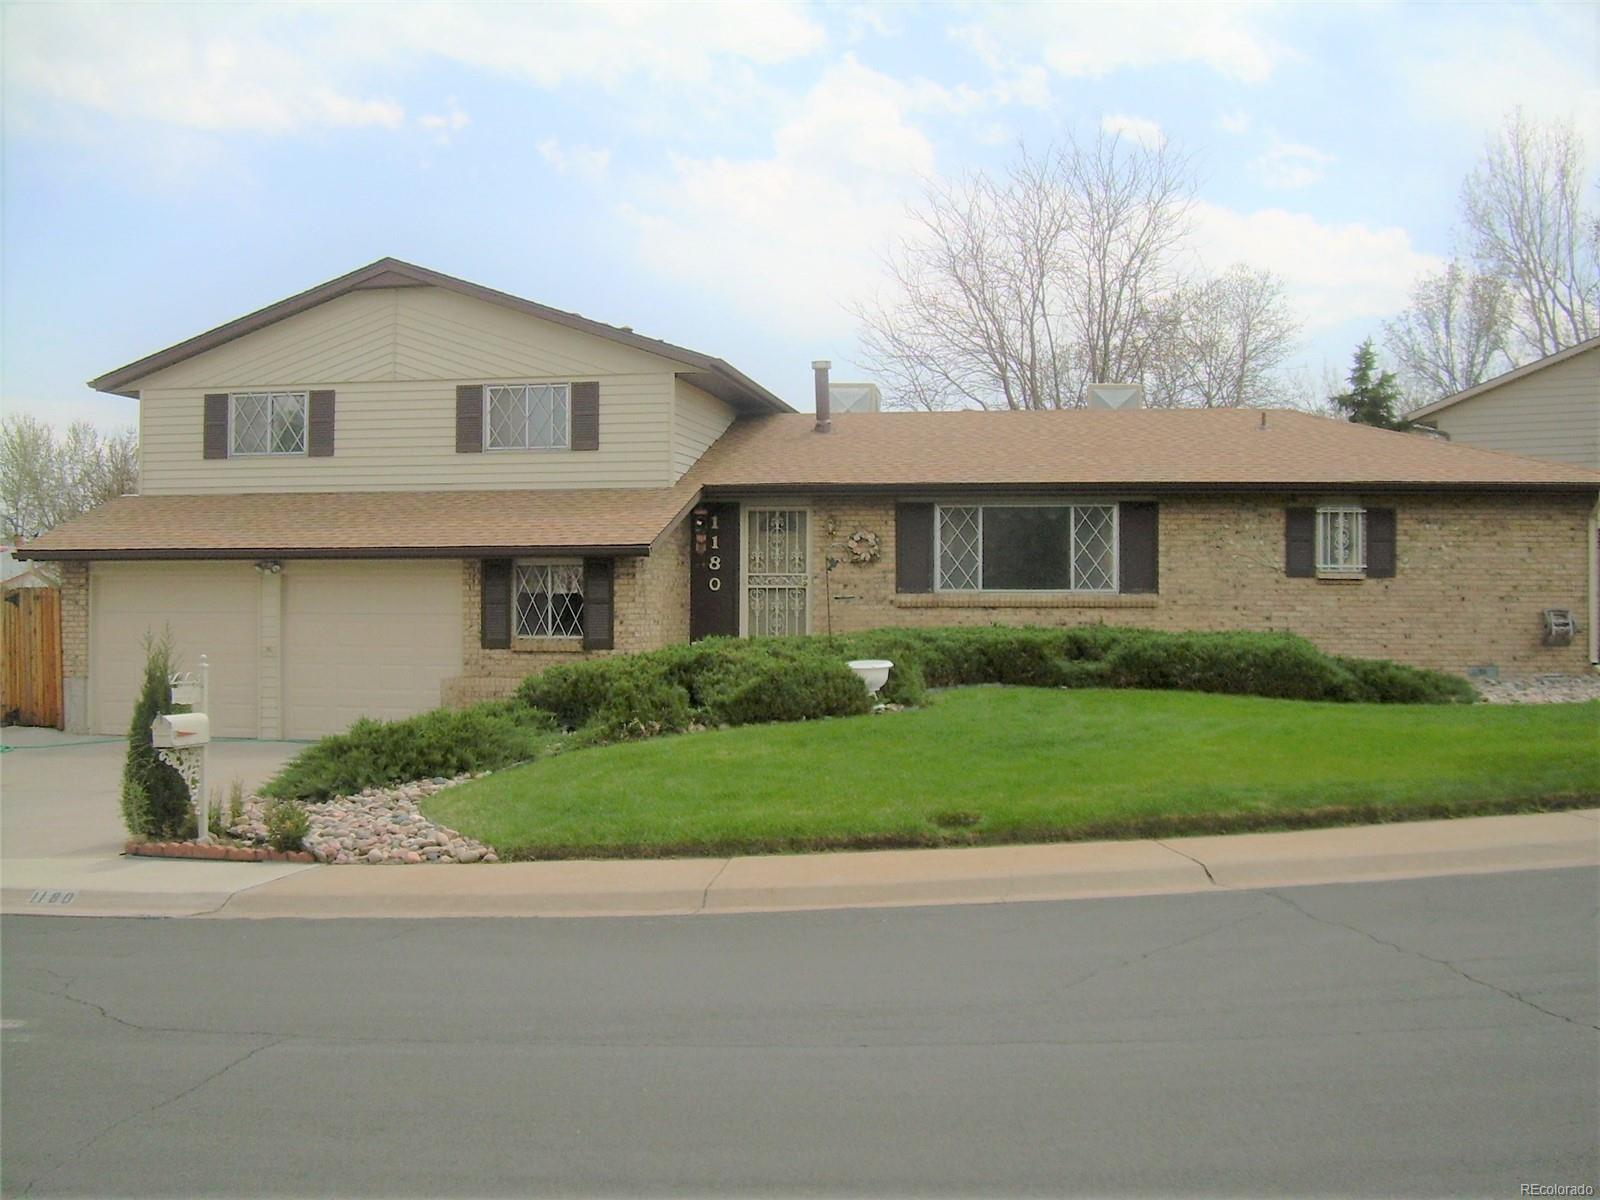 1180 S Kline Way, Lakewood, CO 80232 - Lakewood, CO real estate listing